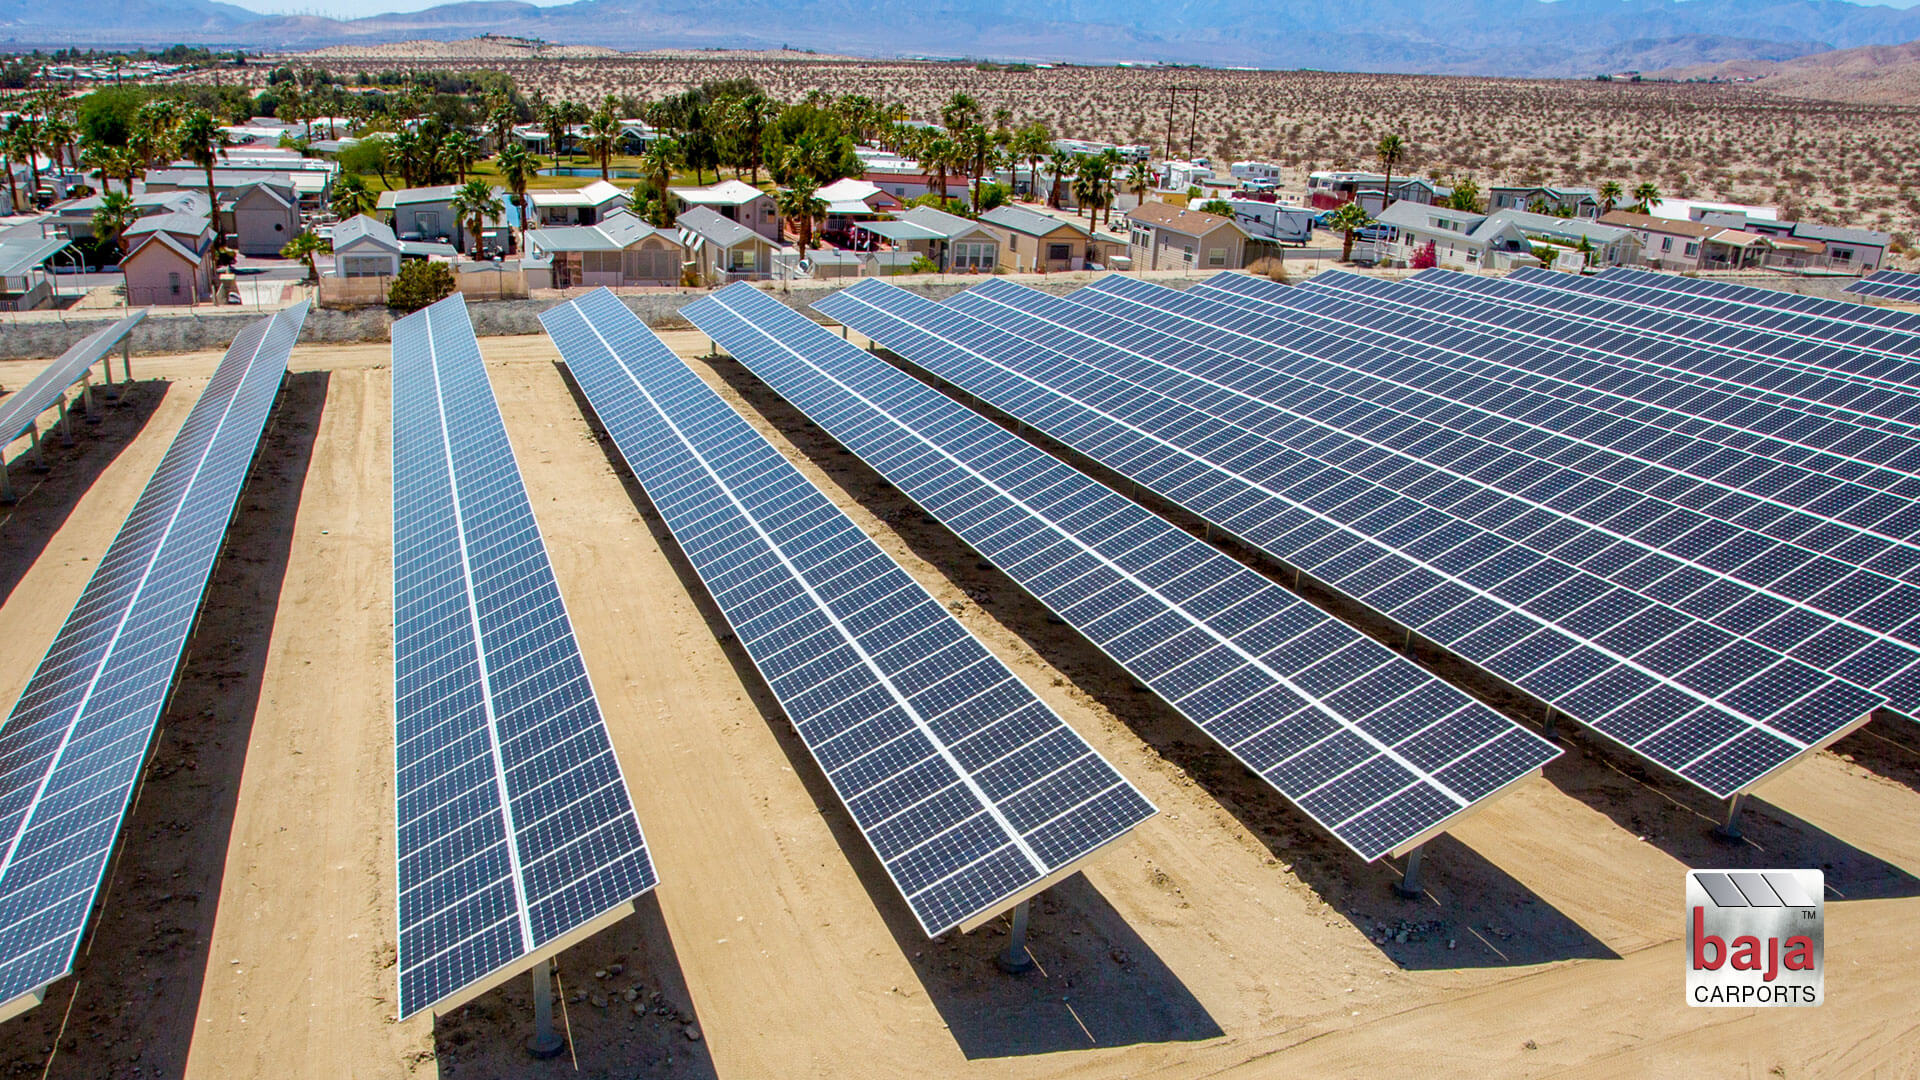 solar ground mount farm in caliente springs by baja carports